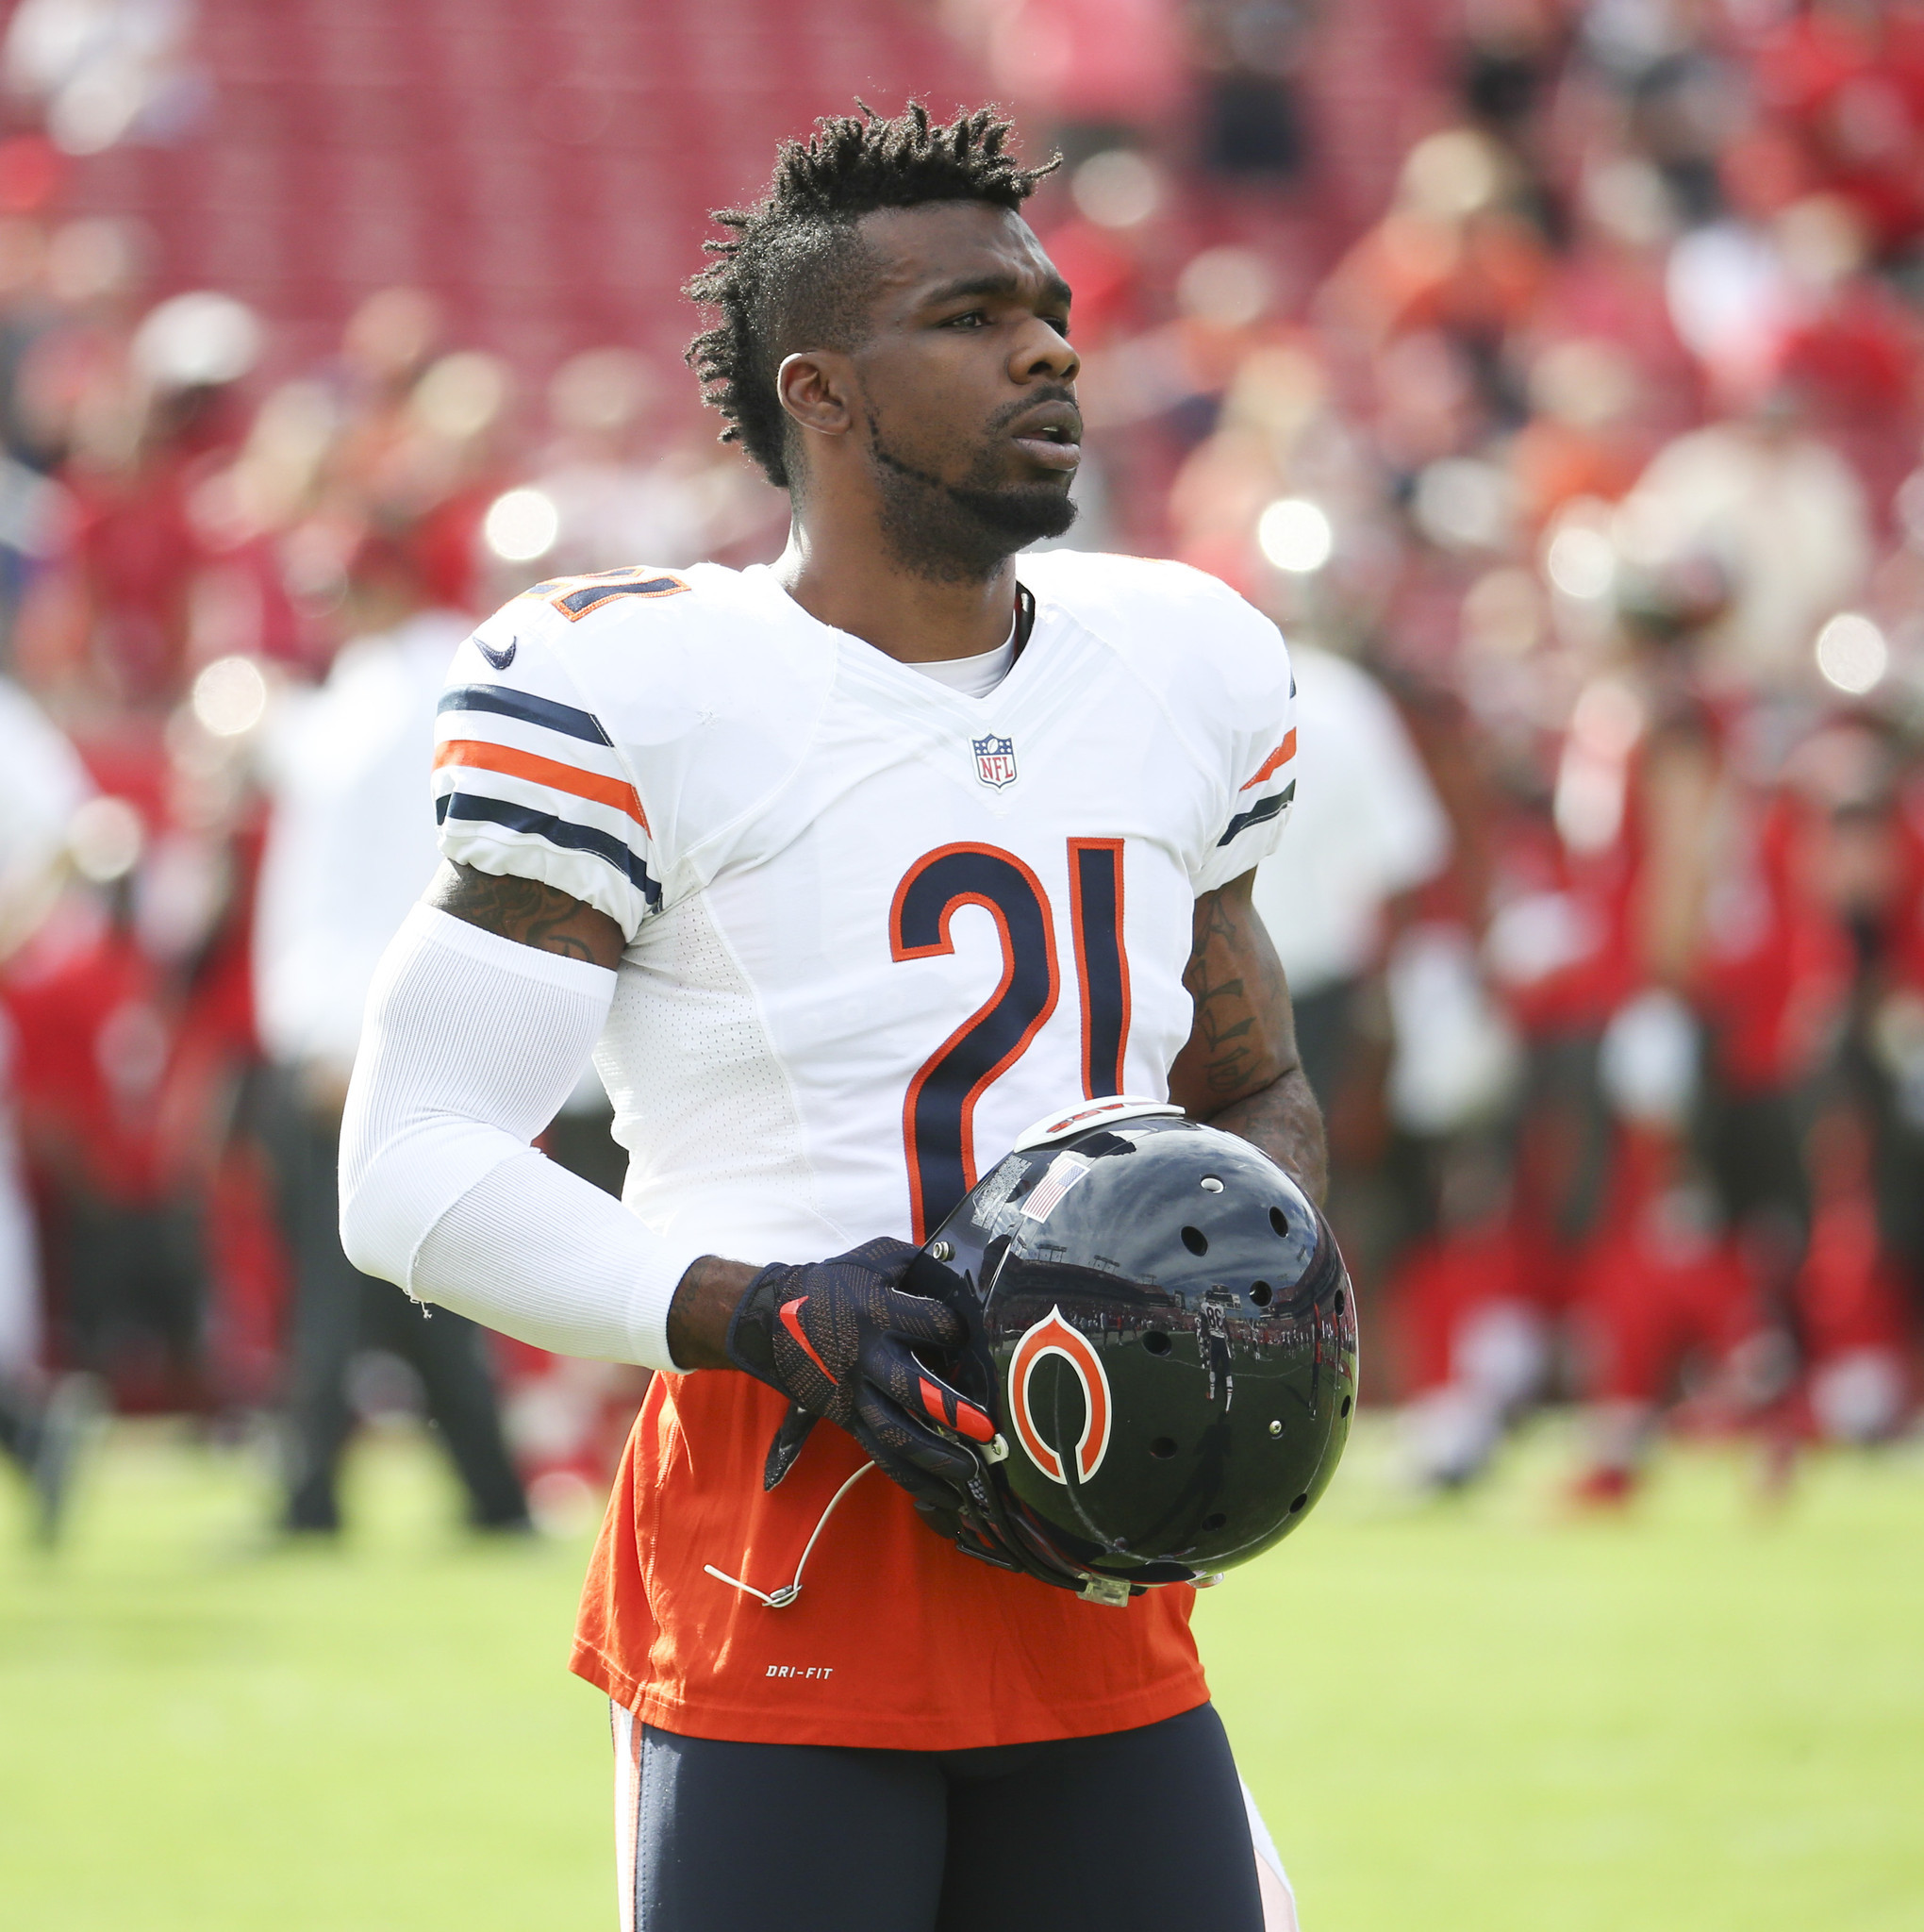 Ct-cornerbacks-preview-bears-spt-0721-20160720